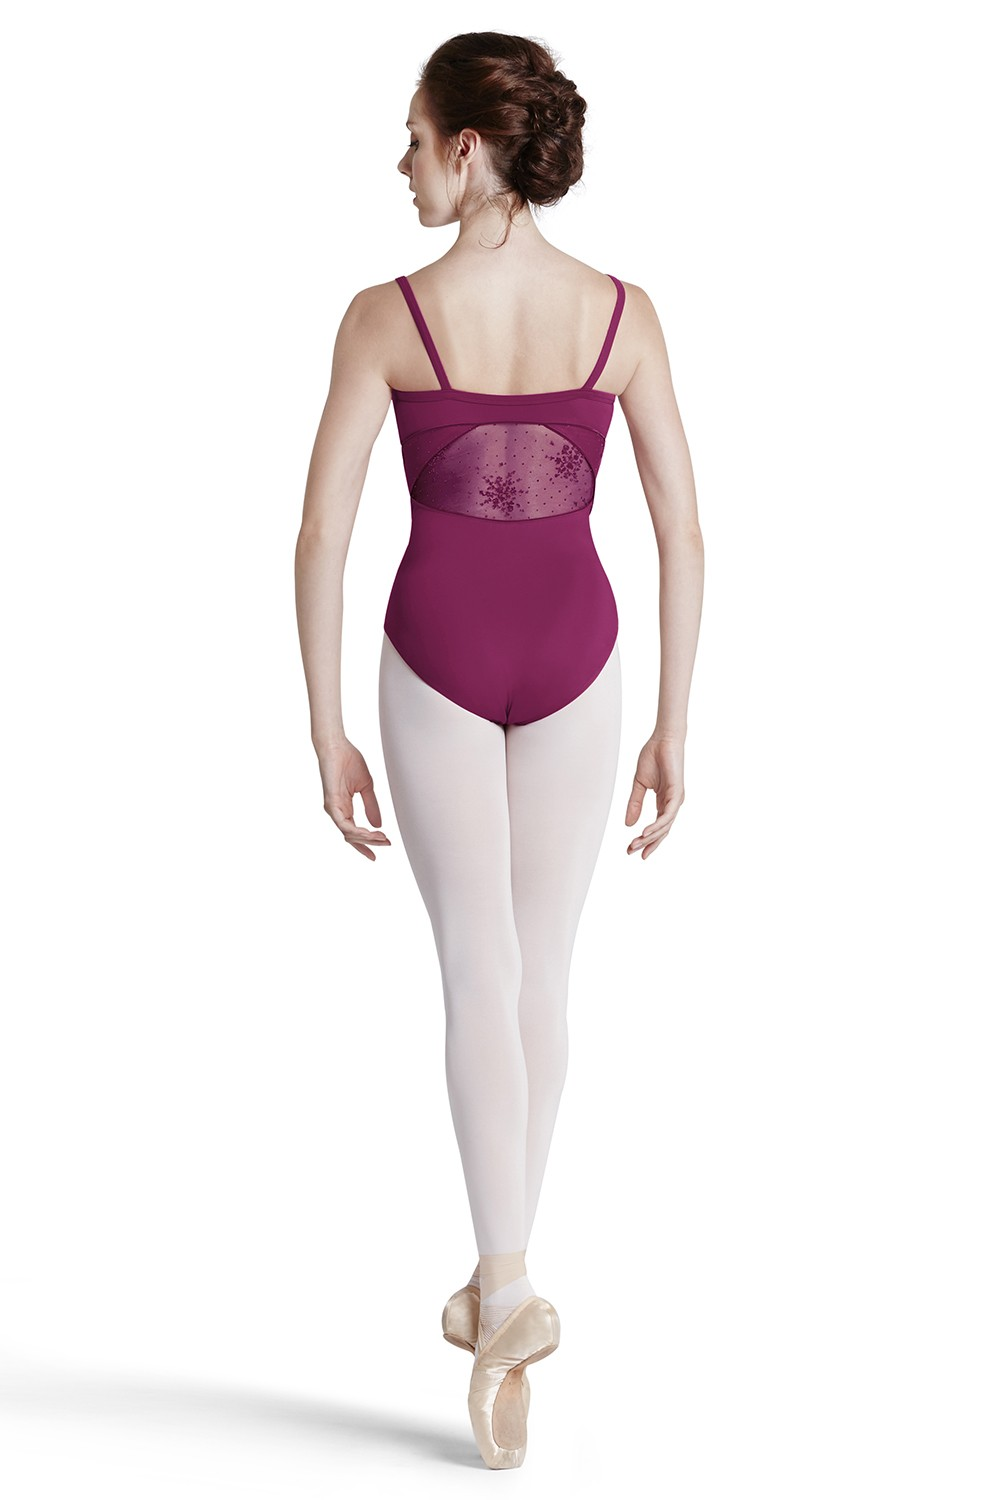 Floral Flck Cami Leo Women's Dance Leotards